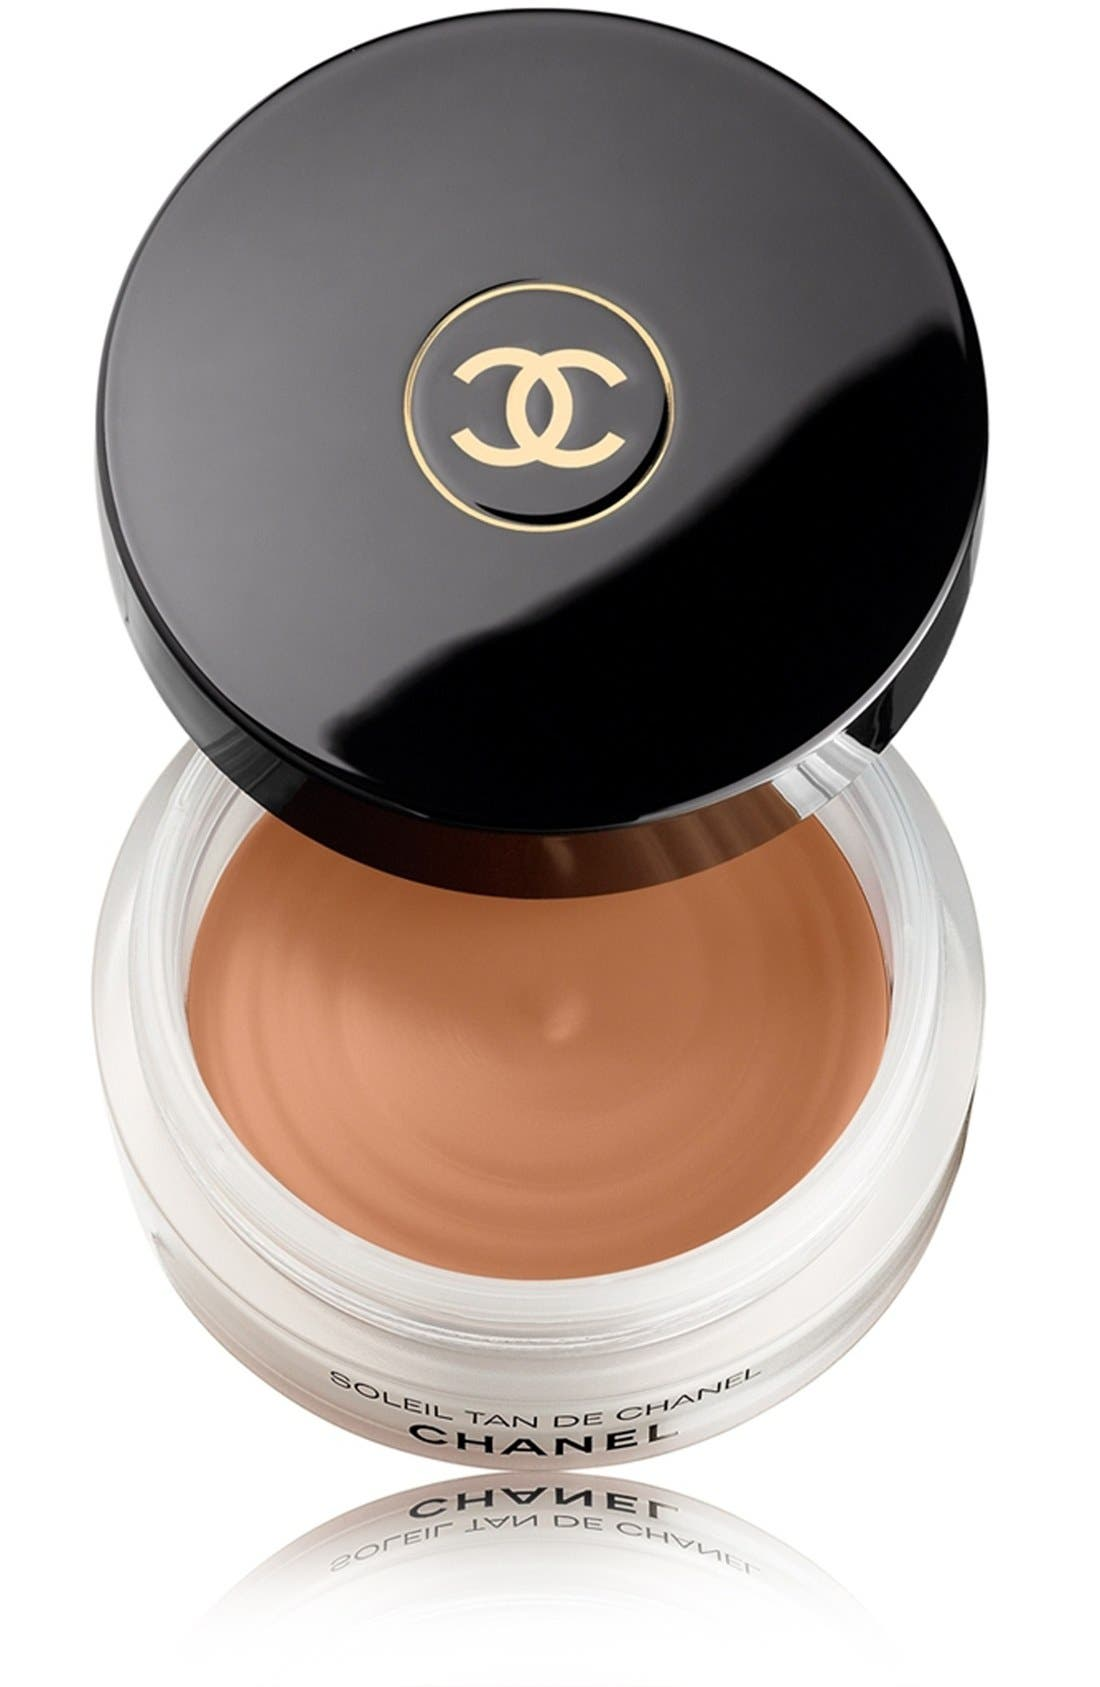 CHANEL SOLEIL TAN DE CHANEL 